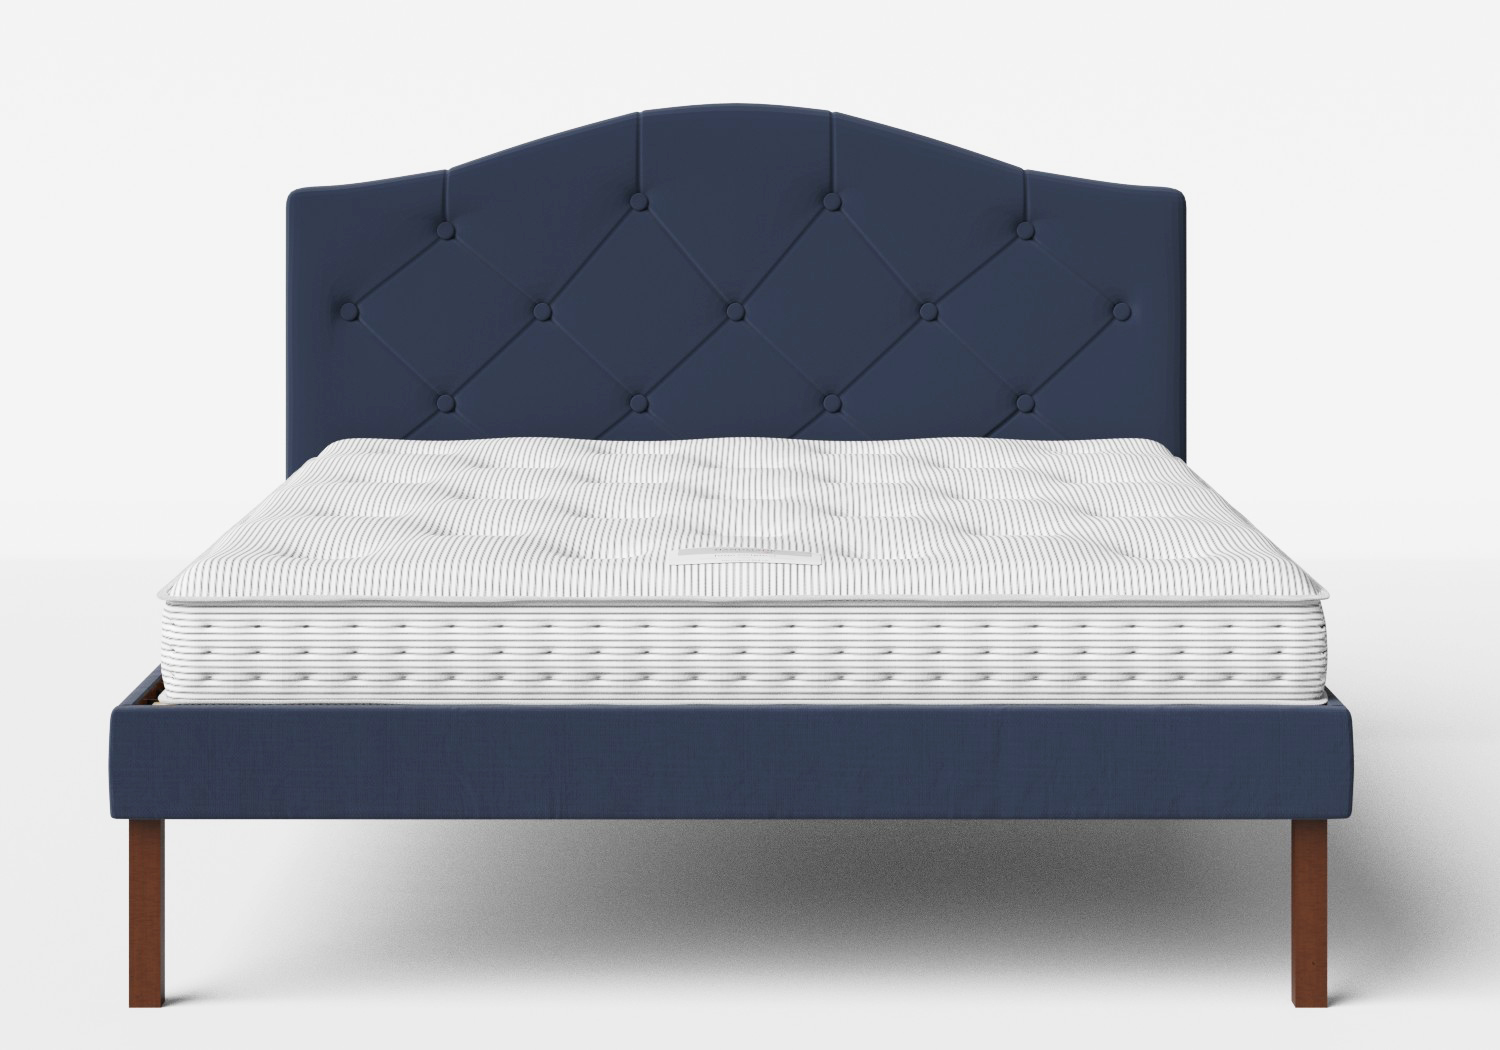 Yoshida Upholstered Bed with Navy fabric with buttoning shown with Juno 1 mattress